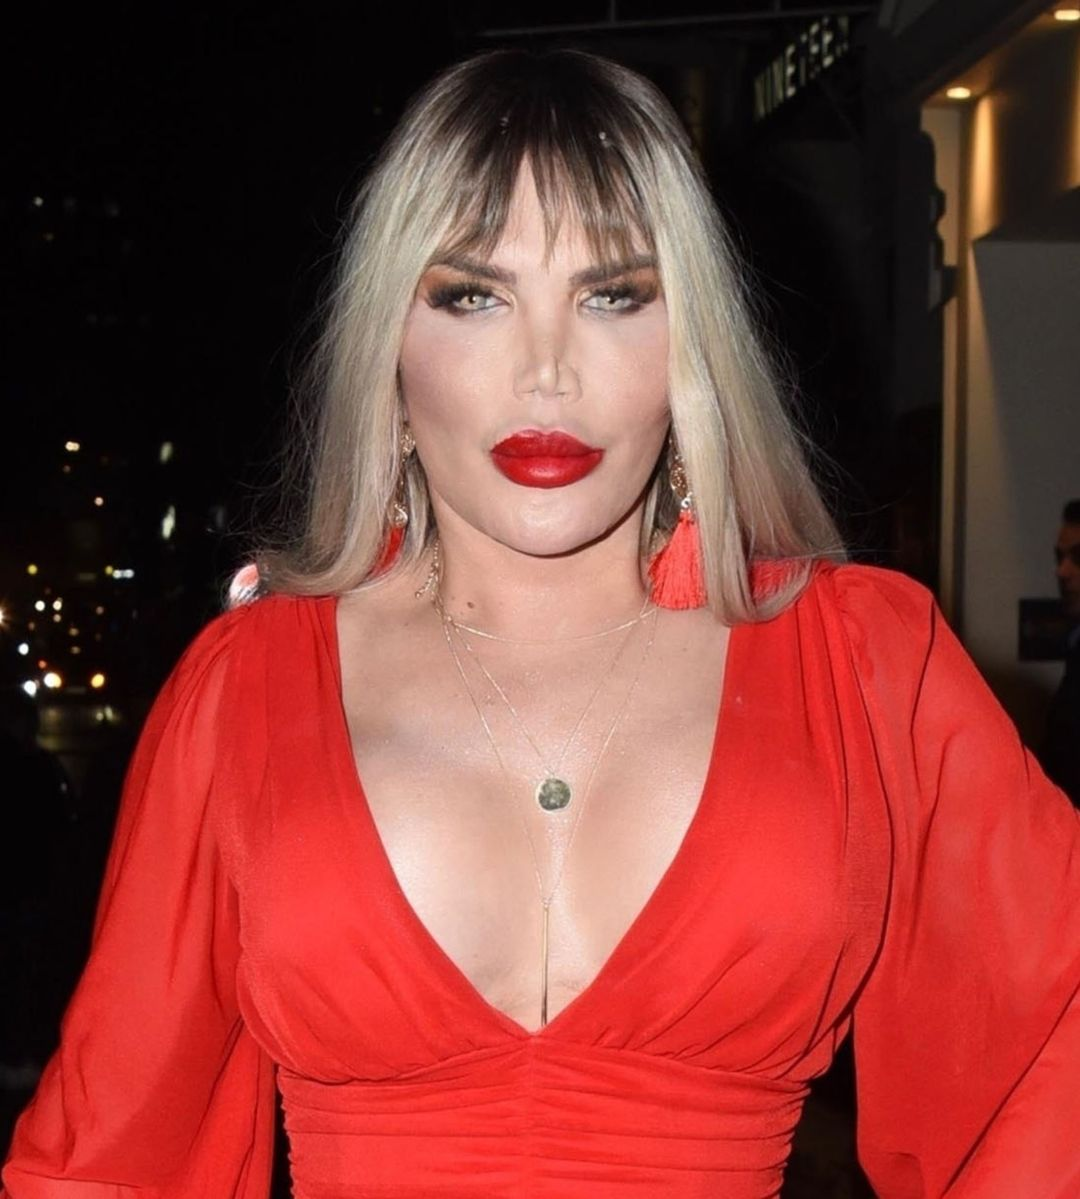 Photo © 2020 Backgrid UK/The Grosby Group Spain: Lagencia Grosby  EXCLUSIVE  London, UK, 8 Feb, 2020.  The Brazilian-British television personality Roddy Alves, formerly Rodrigo Alves and self proclaimed 'Human Ken Doll' is pictured showing off her curves in a stunning red dress out for an evening out in Mayfair  Pictured: Rodrigo Alves - Roddy Alves